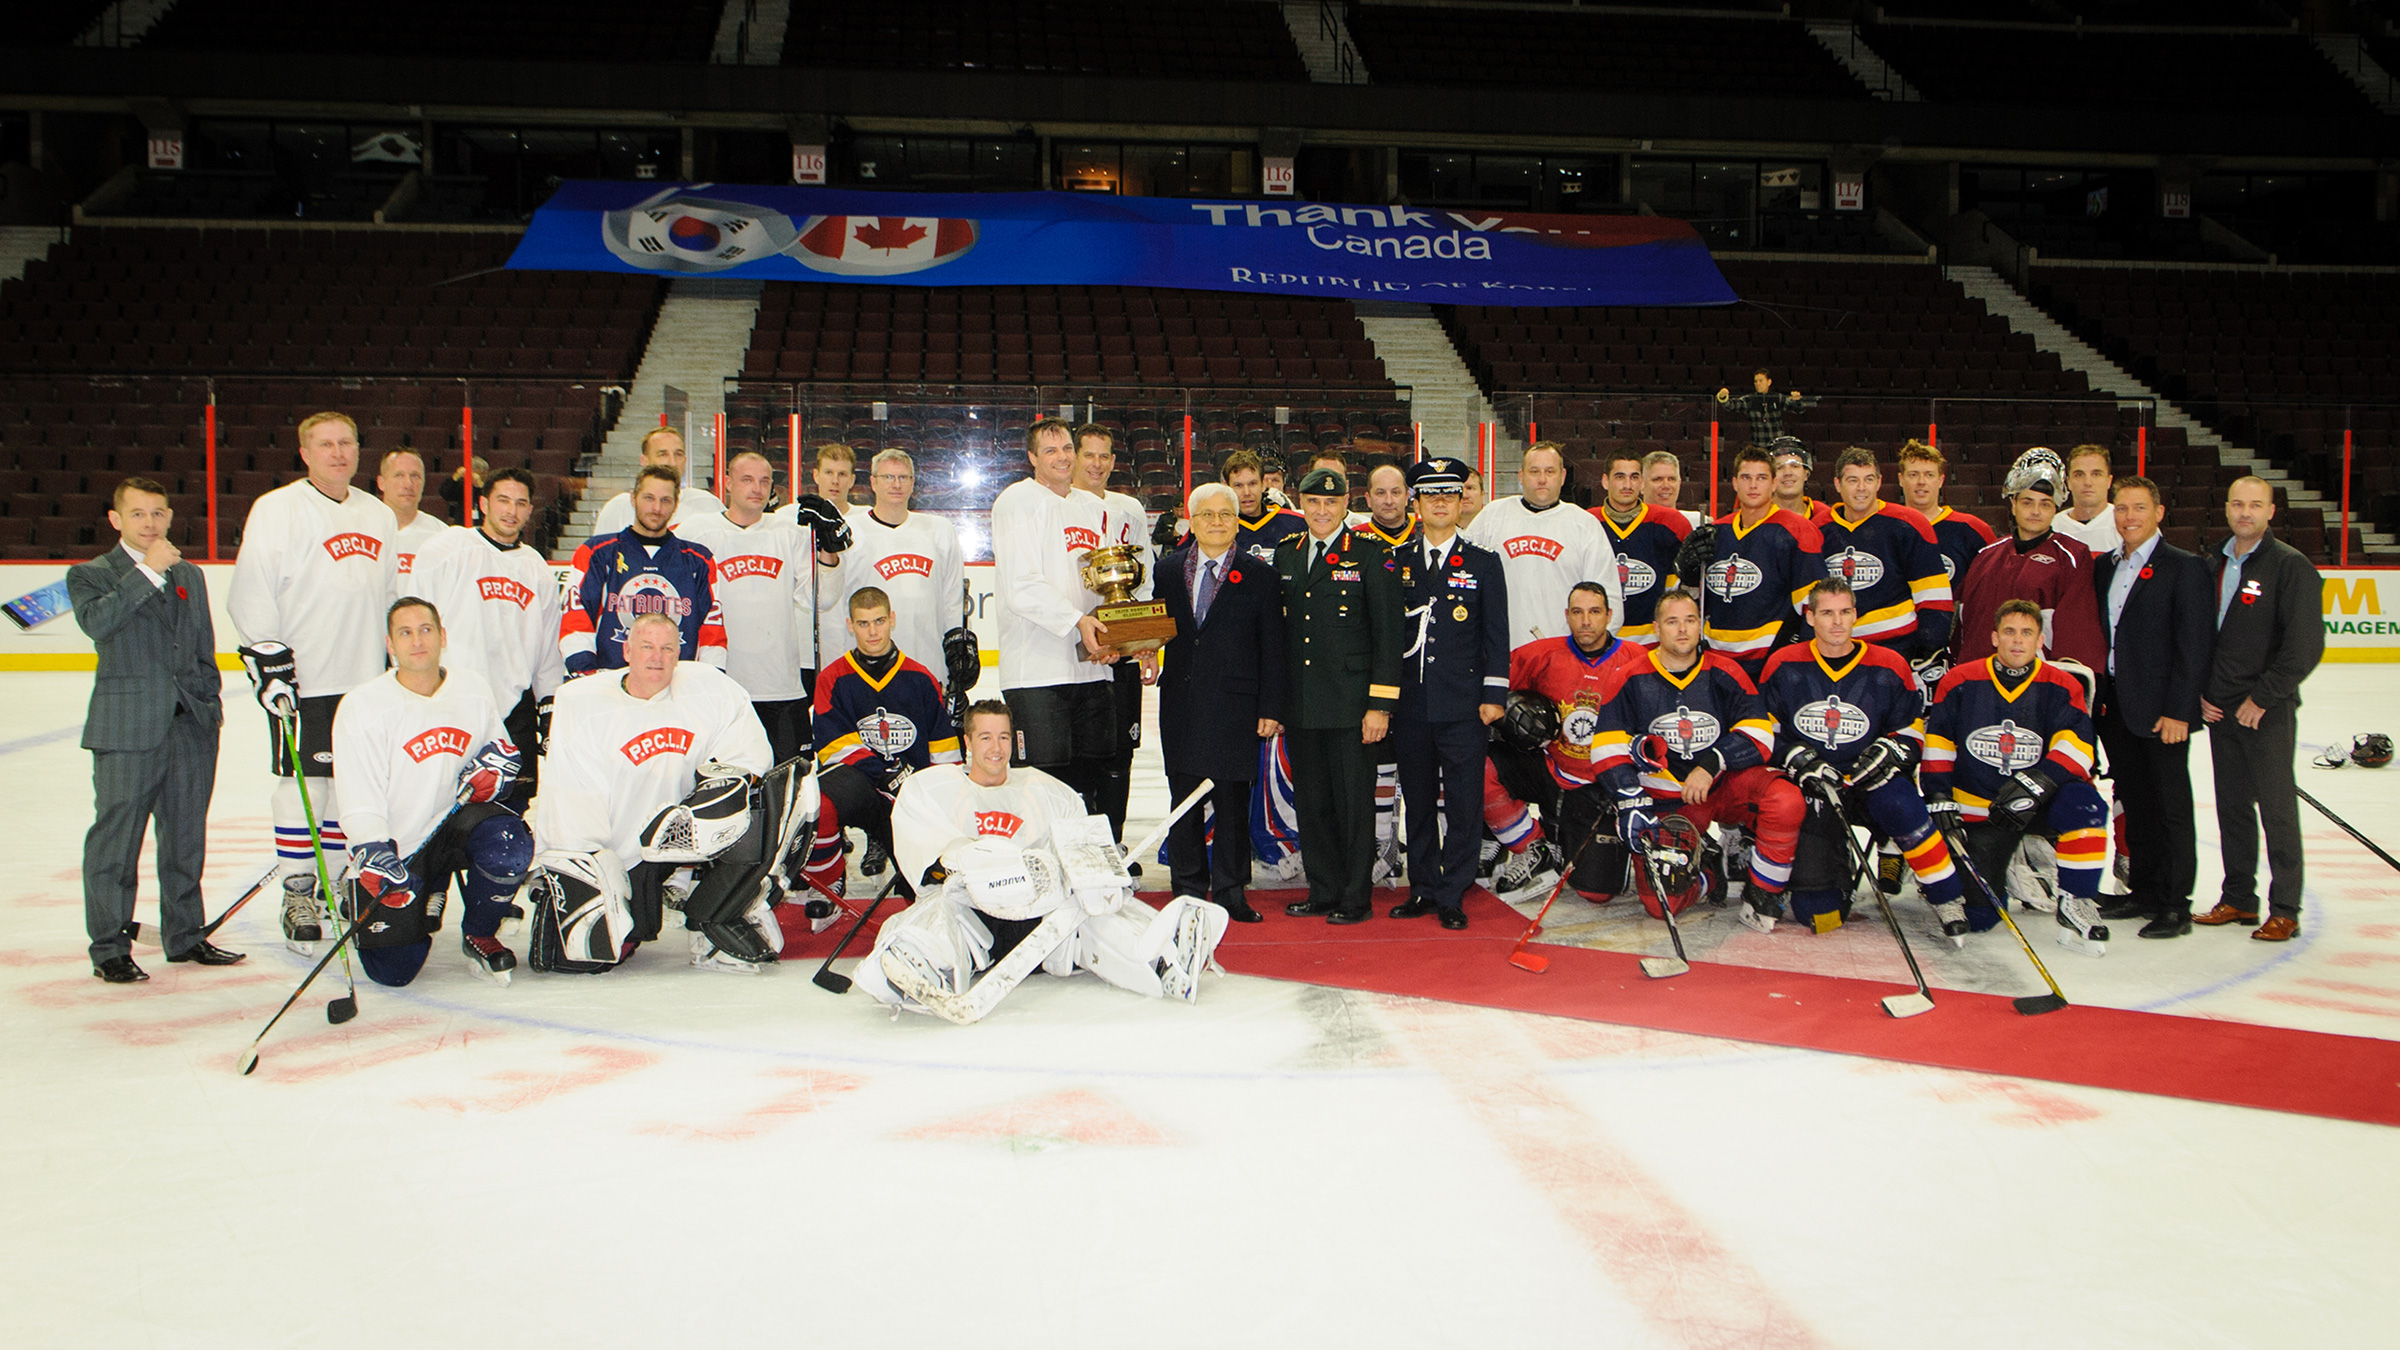 The Imjin River Memorial Cup is presented to the Princess Patricia's Canadian Light Infantry hockey team by Korean Ambassador, Daeshik Jo for the victory against the Royal 22e Régiment in the Imjin Classic hockey game held at the Canadian Tire Centre on November 5, 2016. Photo by: Daniel Merrell, Canadian Forces Support Unit (Ottawa). ©2016 DND/MDN Canada.